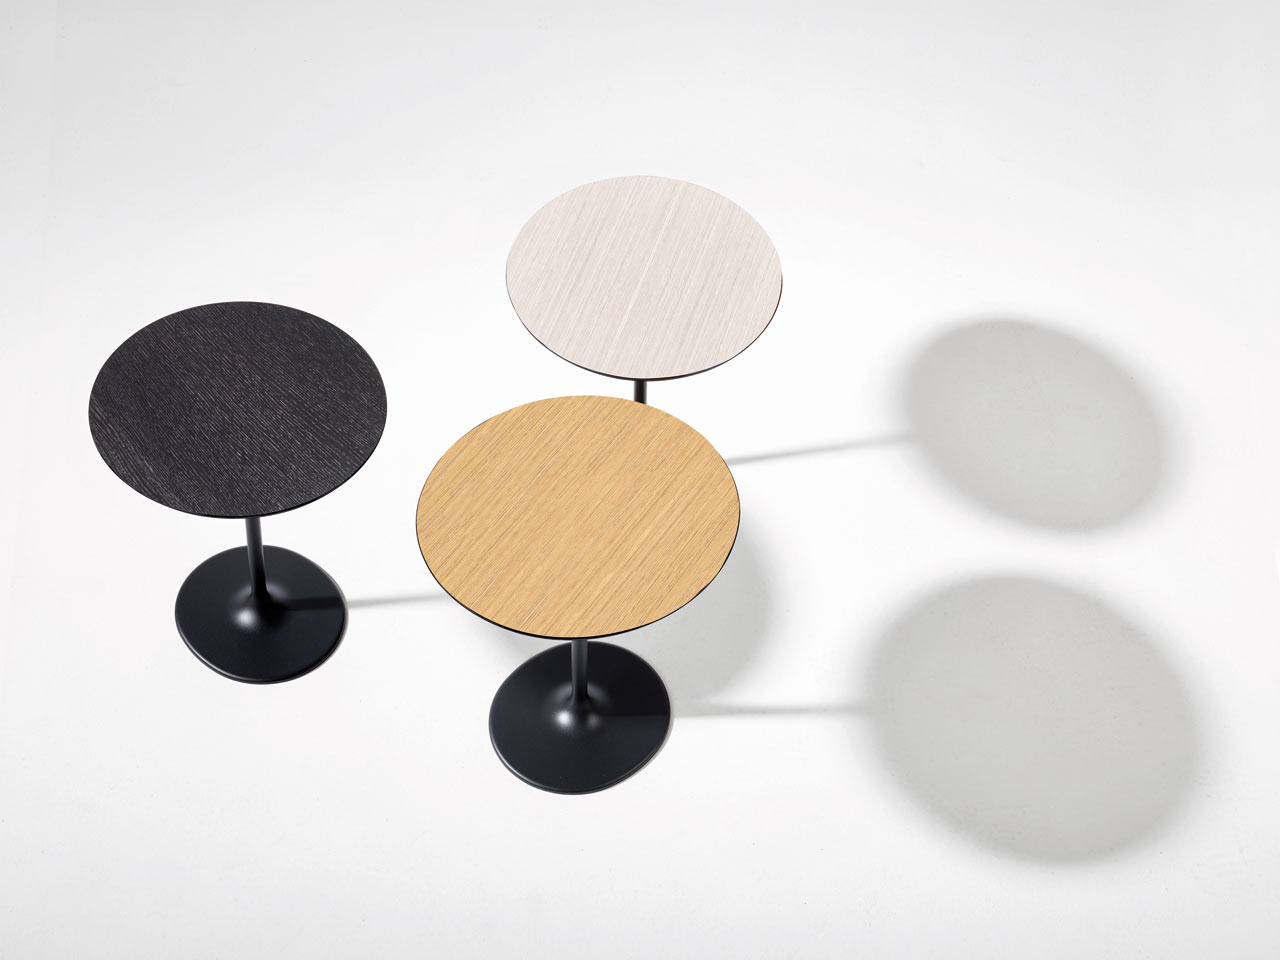 Dizzie tables by Lievore Altherr Molina